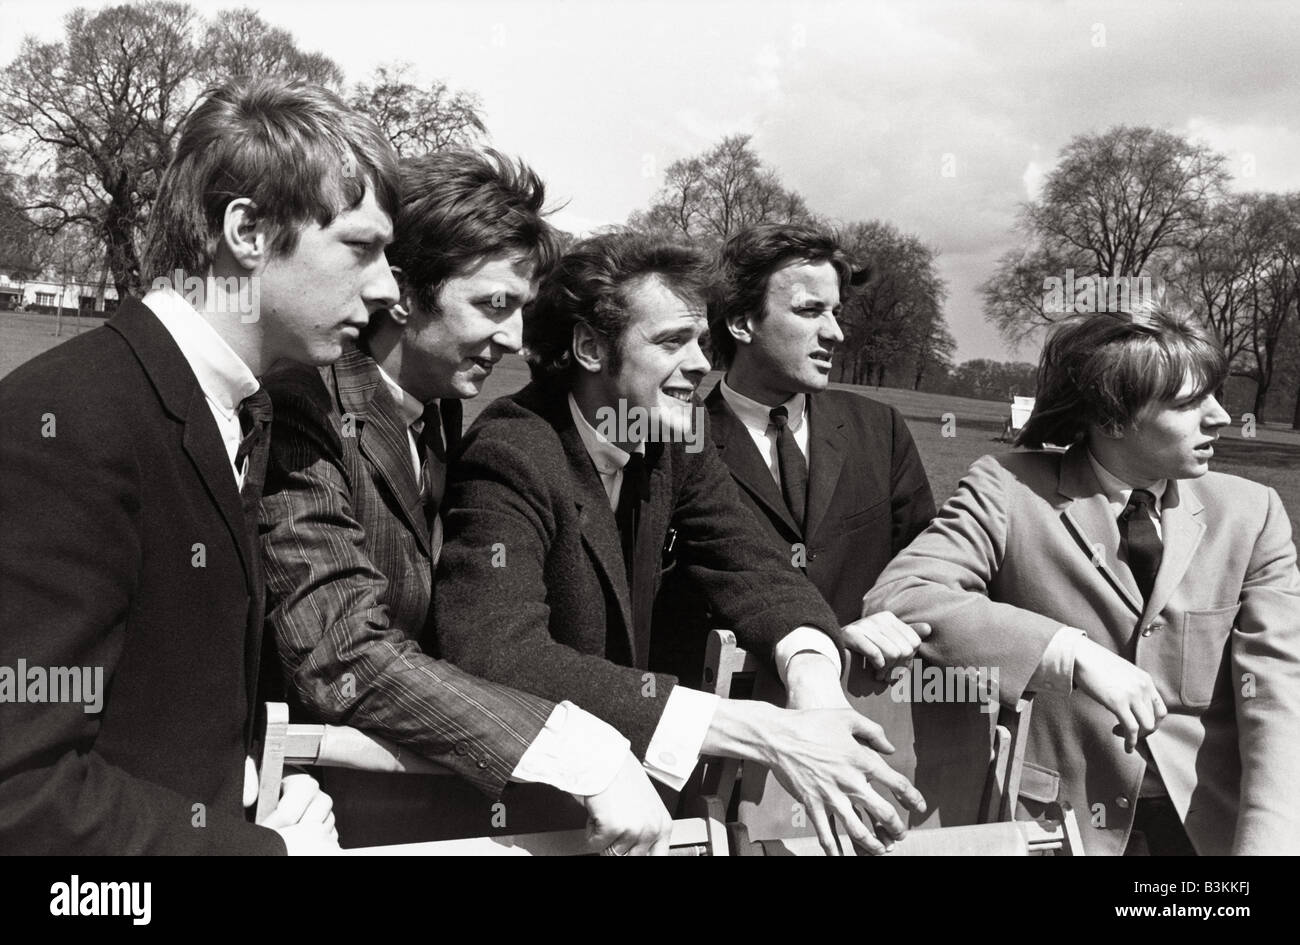 yardbirds uk pop group in hyde park london 23 april 1964 l r chris stock photo royalty free. Black Bedroom Furniture Sets. Home Design Ideas